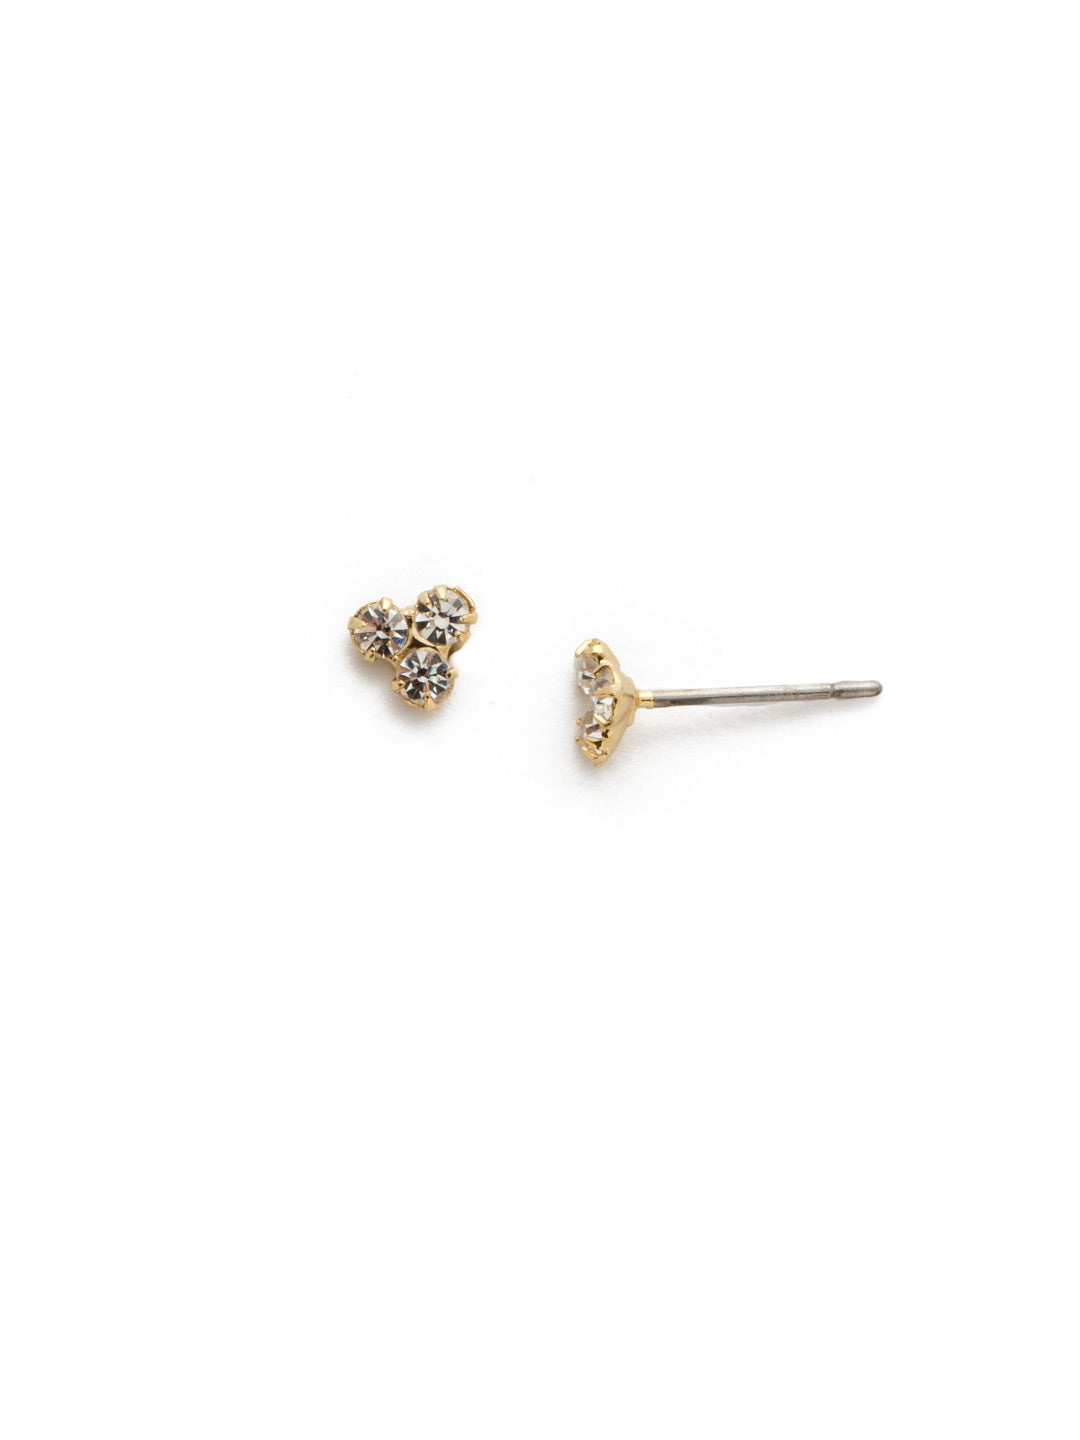 Halia Trinity Crystal Stud Earrings - 4EEK27BGCRY